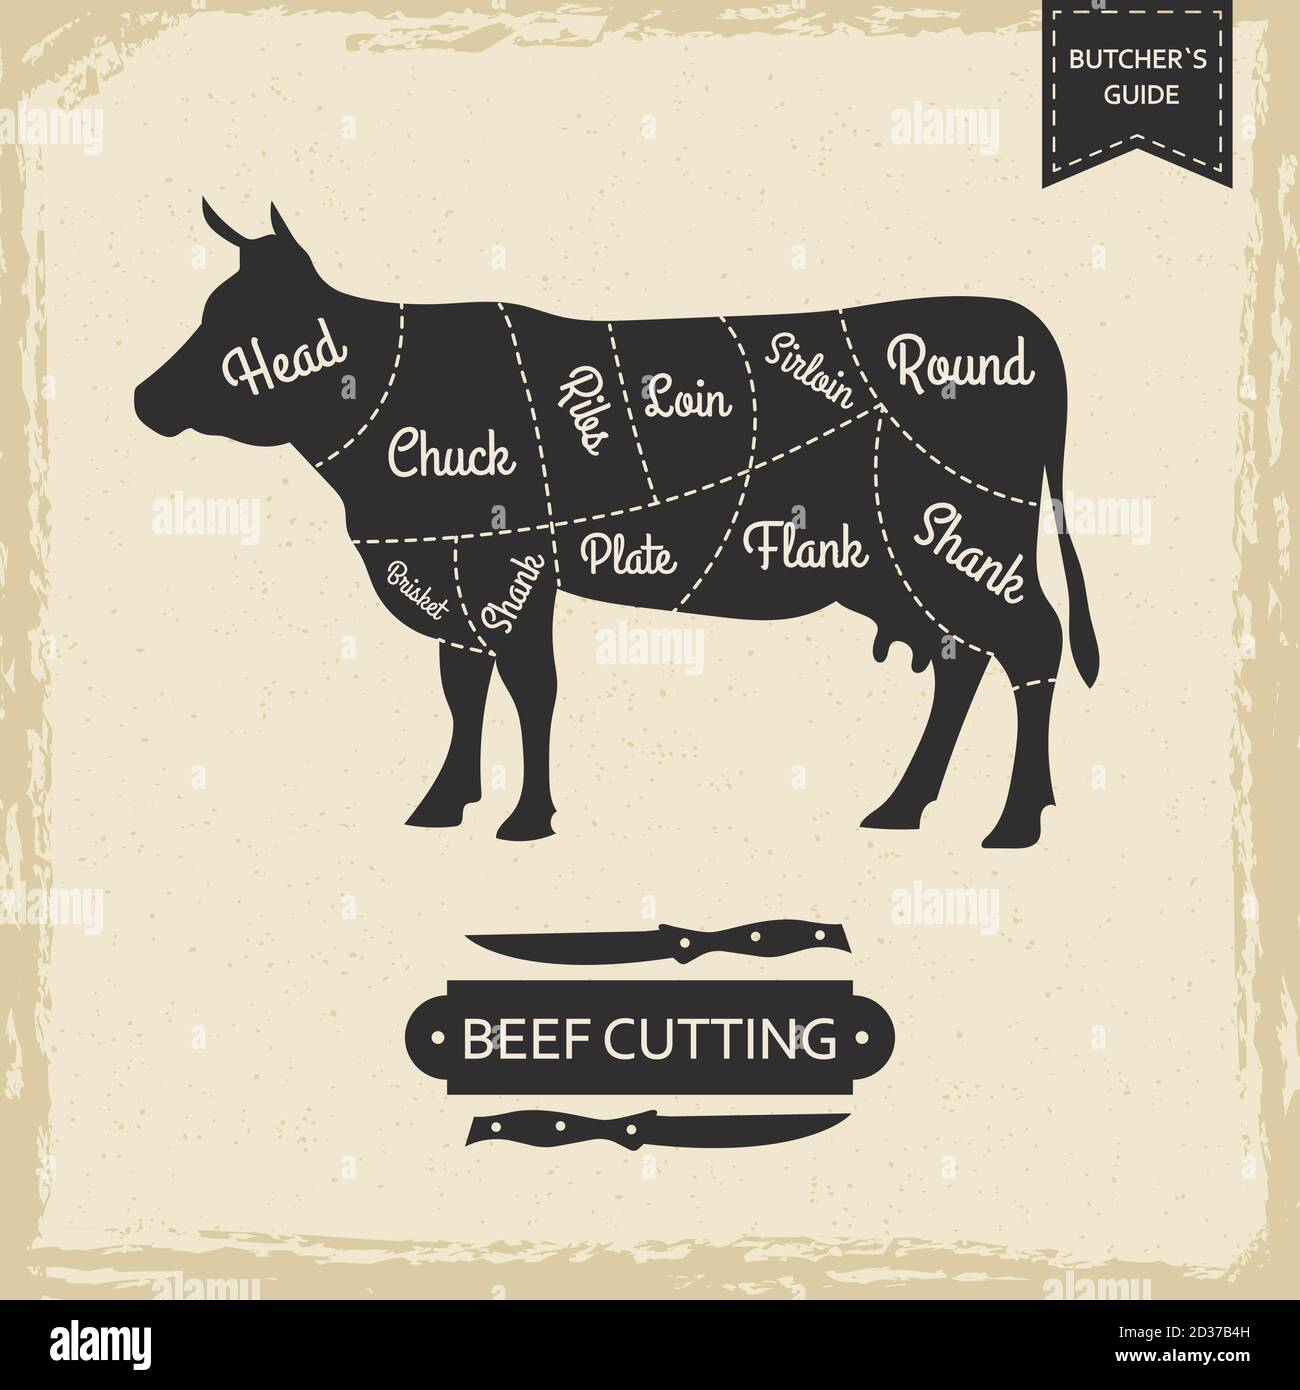 Butchers library vintage page - beef cutting vector poster design Stock Vector